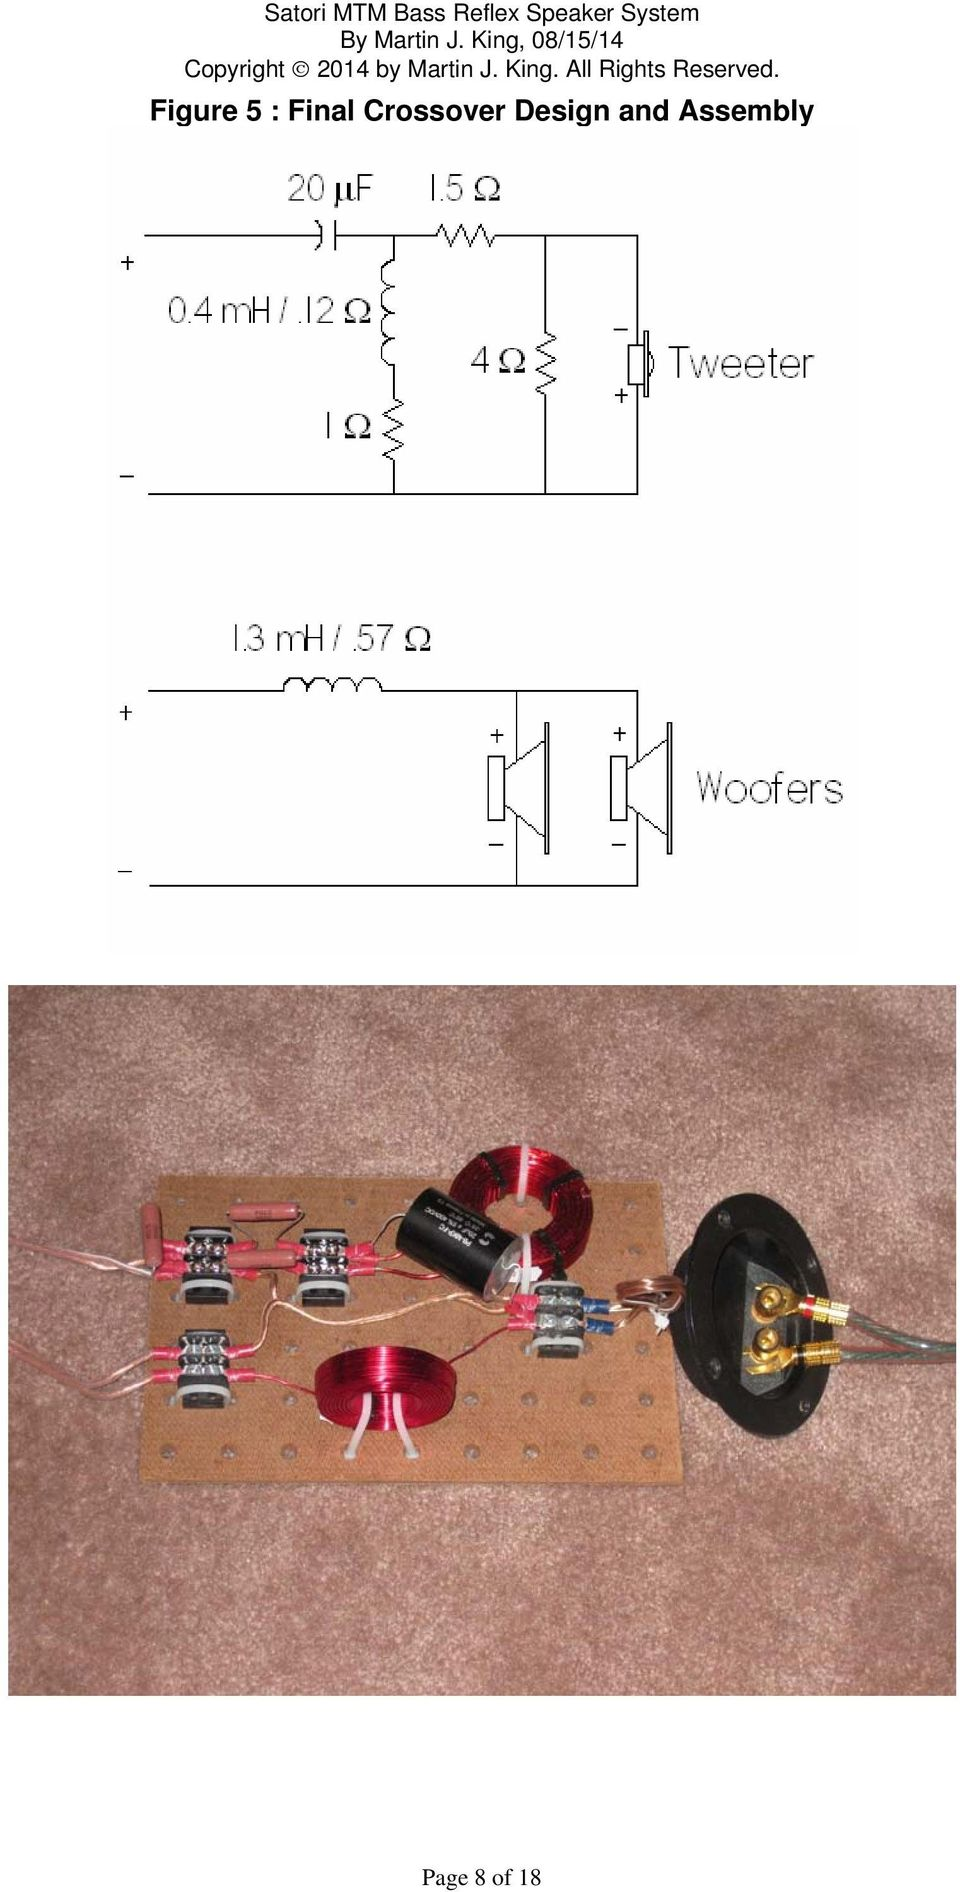 Satori Mtm Bass Reflex Speaker System Pdf Loudspeaker Crossover Network Schematic Design 10 The Was Assembled On Peg Board External To Enclosure Two Sets Of Leads One For Paralleled Woofers And Tweeter